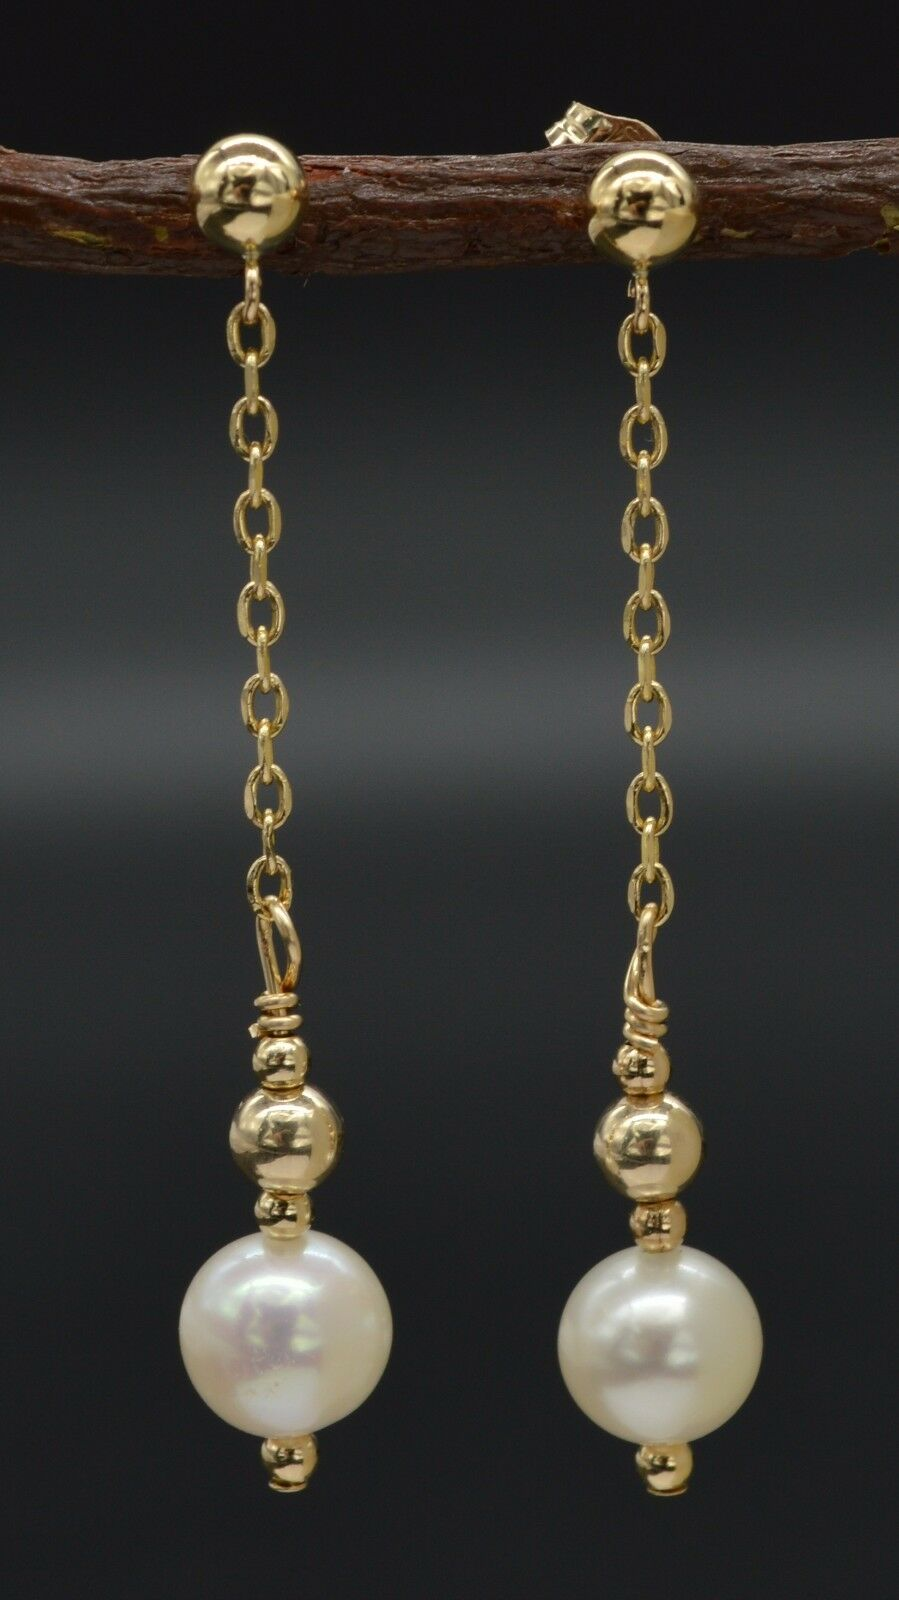 New 14K Solid gold Cultured White 7mm Pearl Drop Dangle Earrings